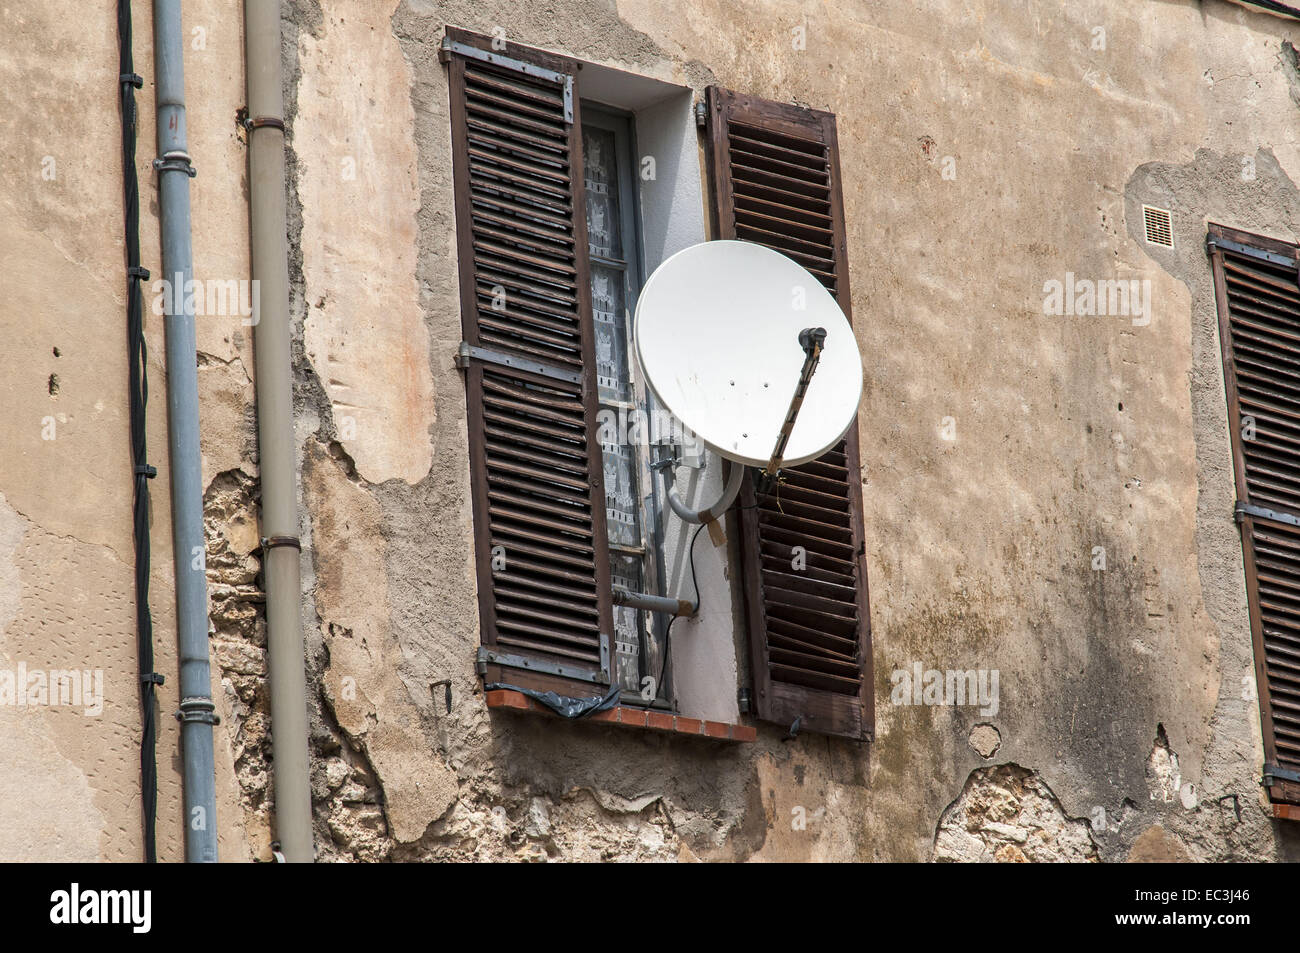 satilite receiver at an old house - Stock Image